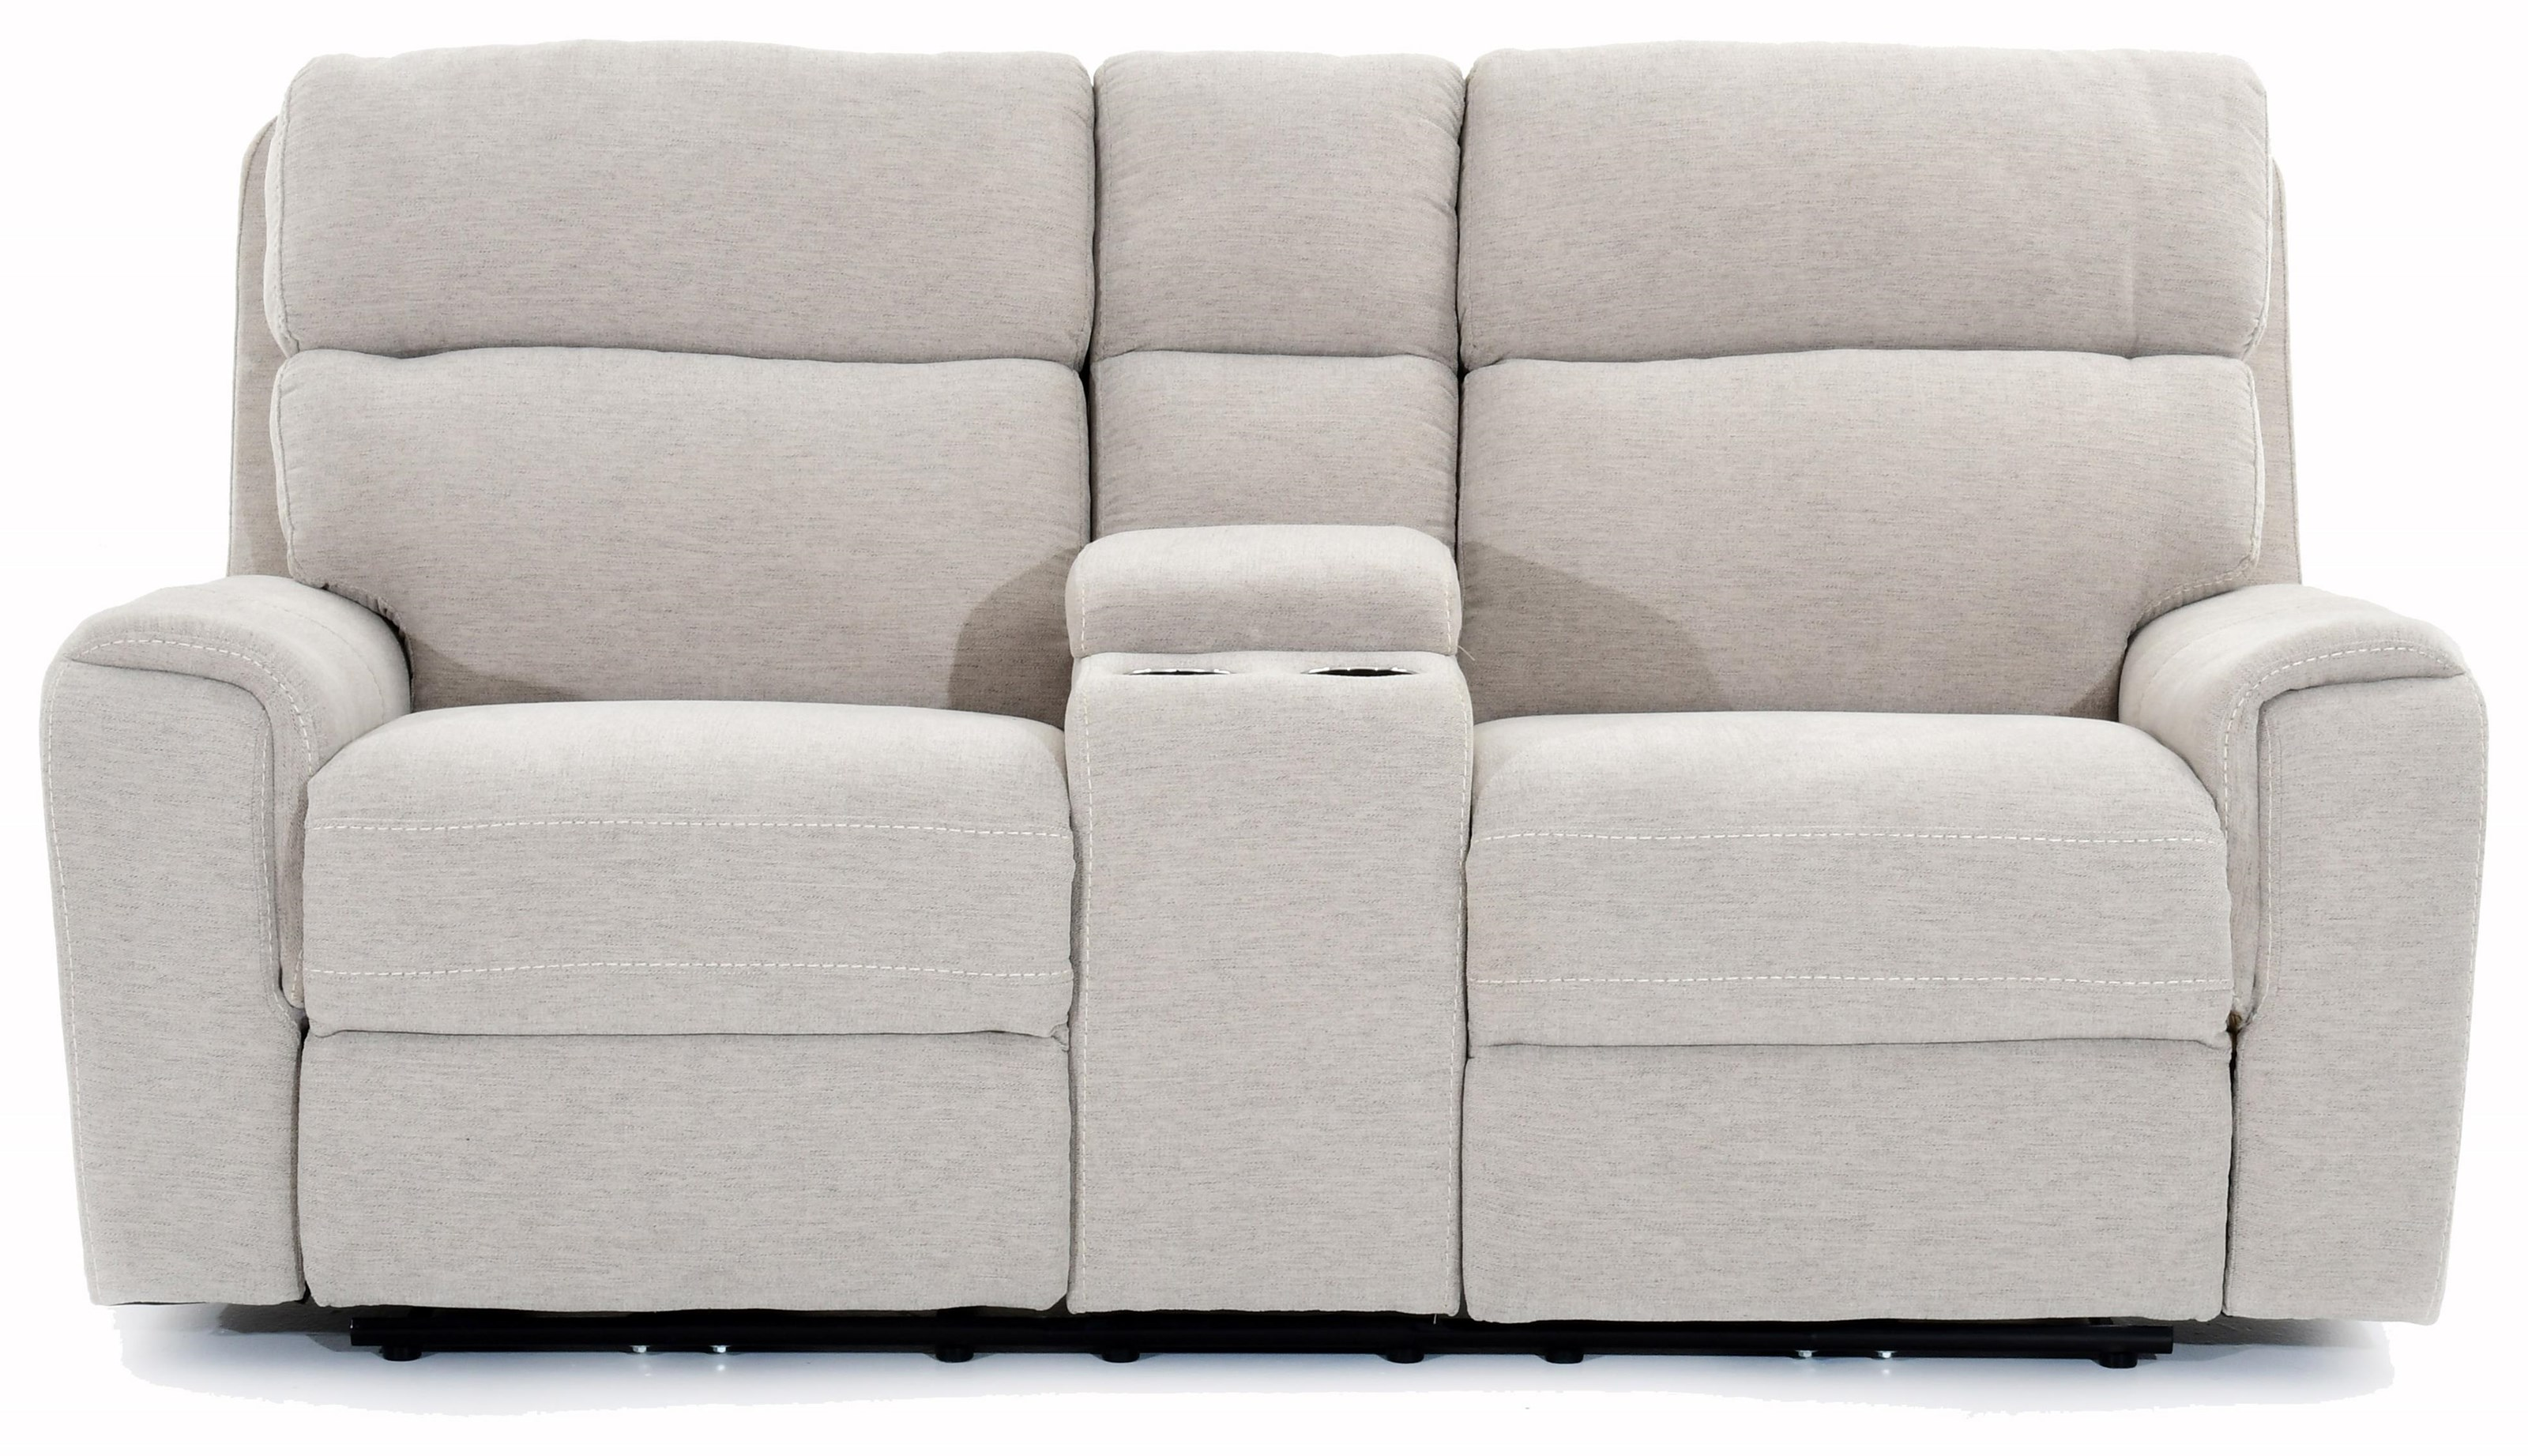 Oberon Power Motion Console Loveseat by Trend Resources International at Baer's Furniture